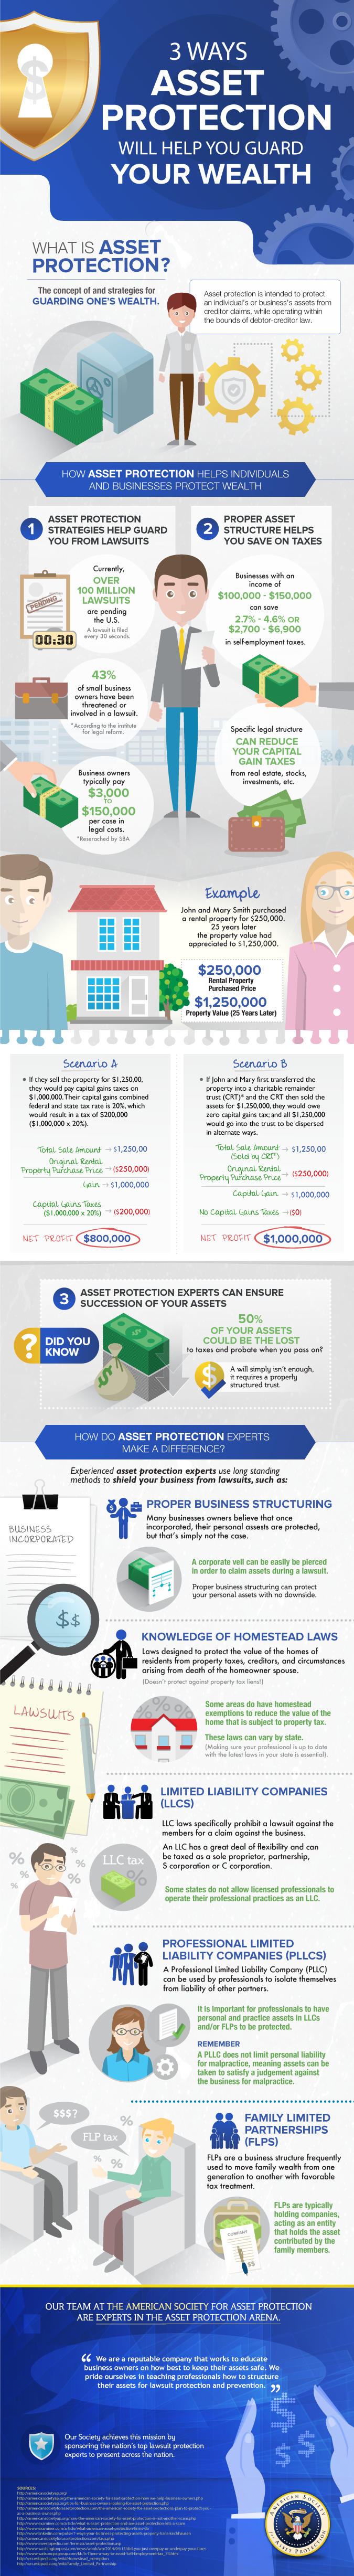 3 Ways Asset Protection Will Help You Guard Your Wealth